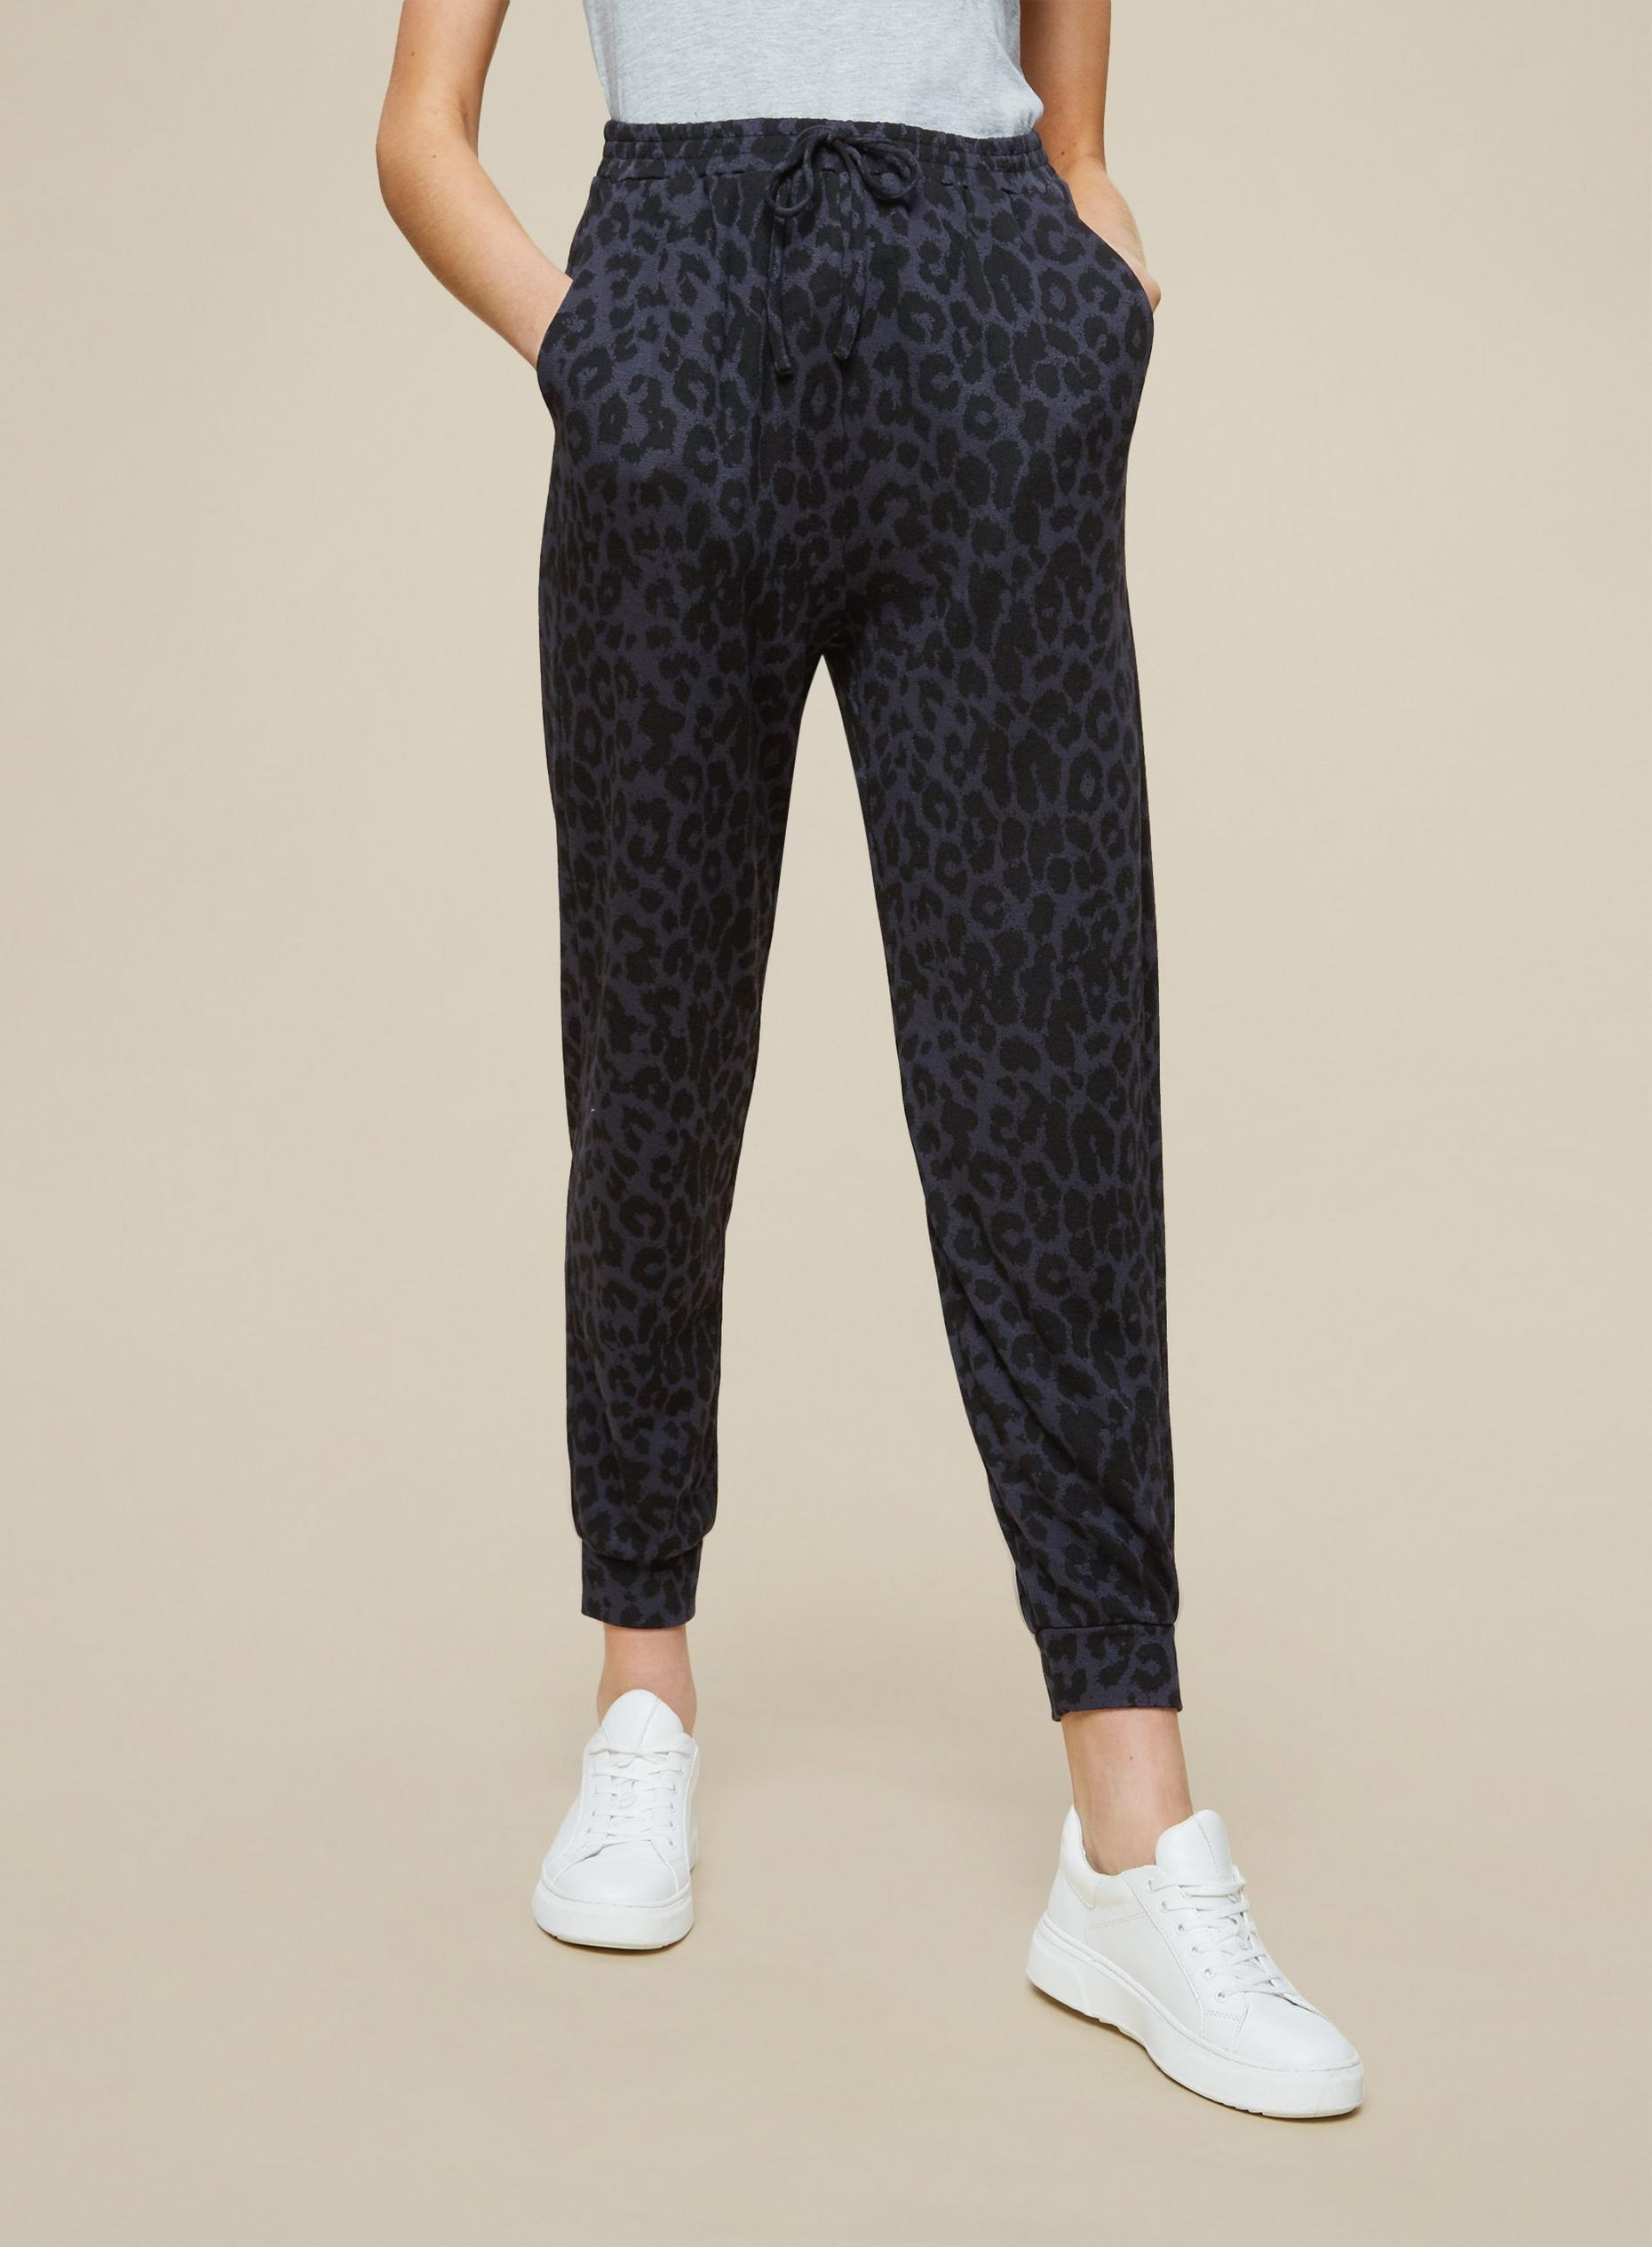 Black Animal Print Cuffed Leg Joggers